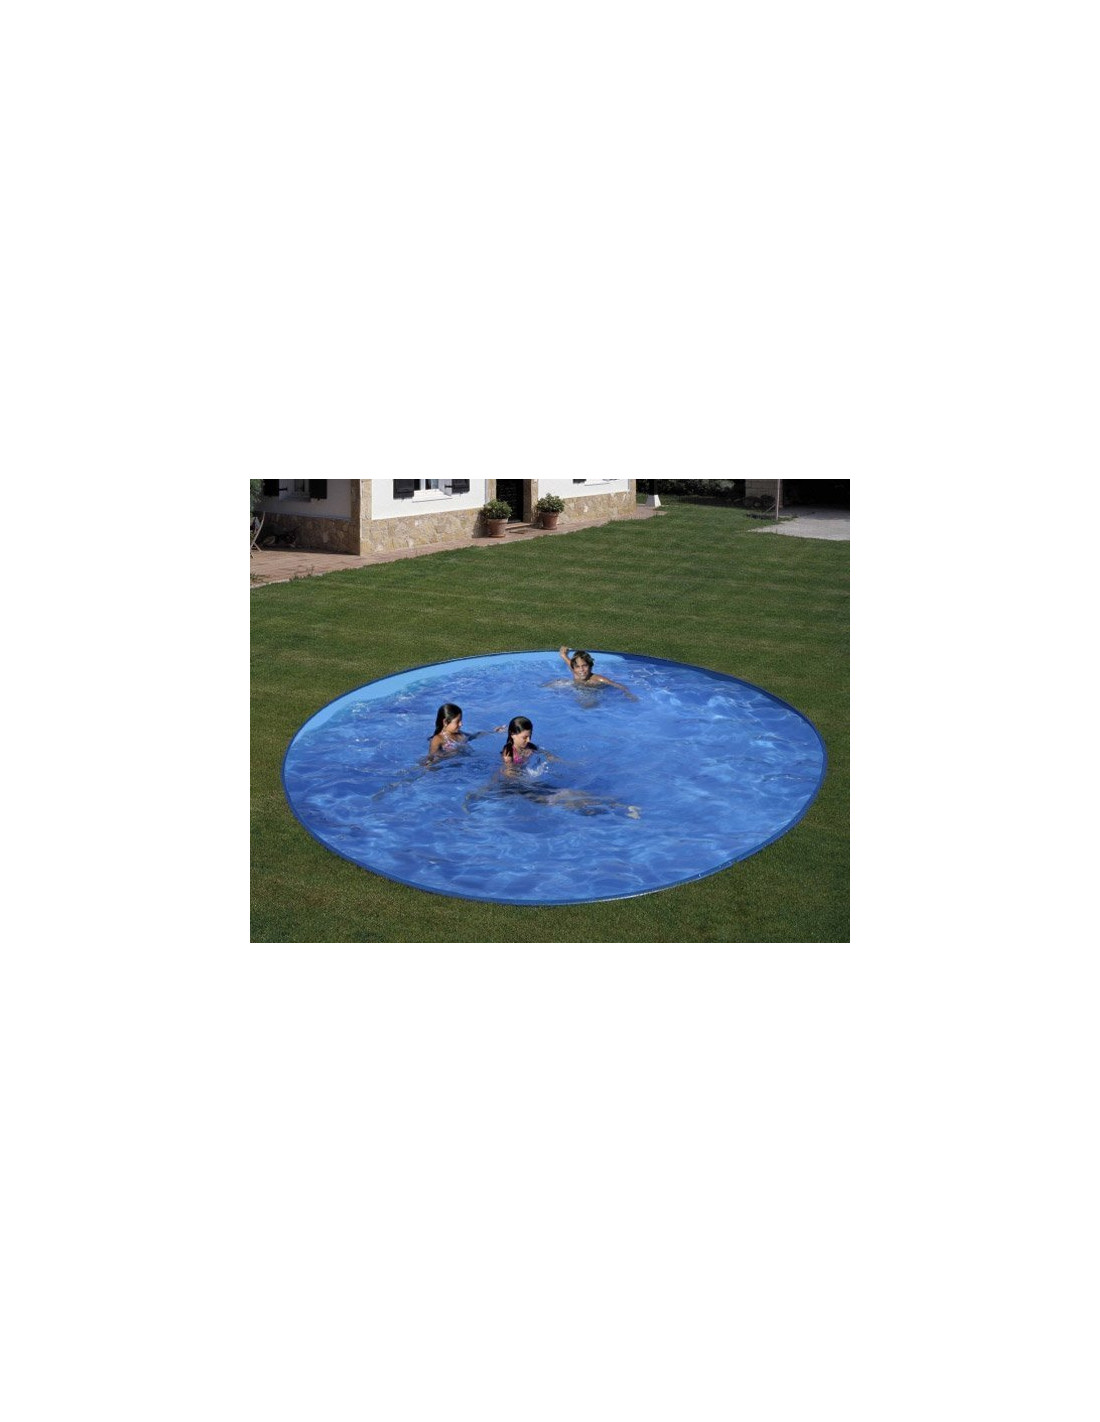 Piscine enterr e en kit star pool 4 20 3 50 cm x h 1 for Kit piscine enterree